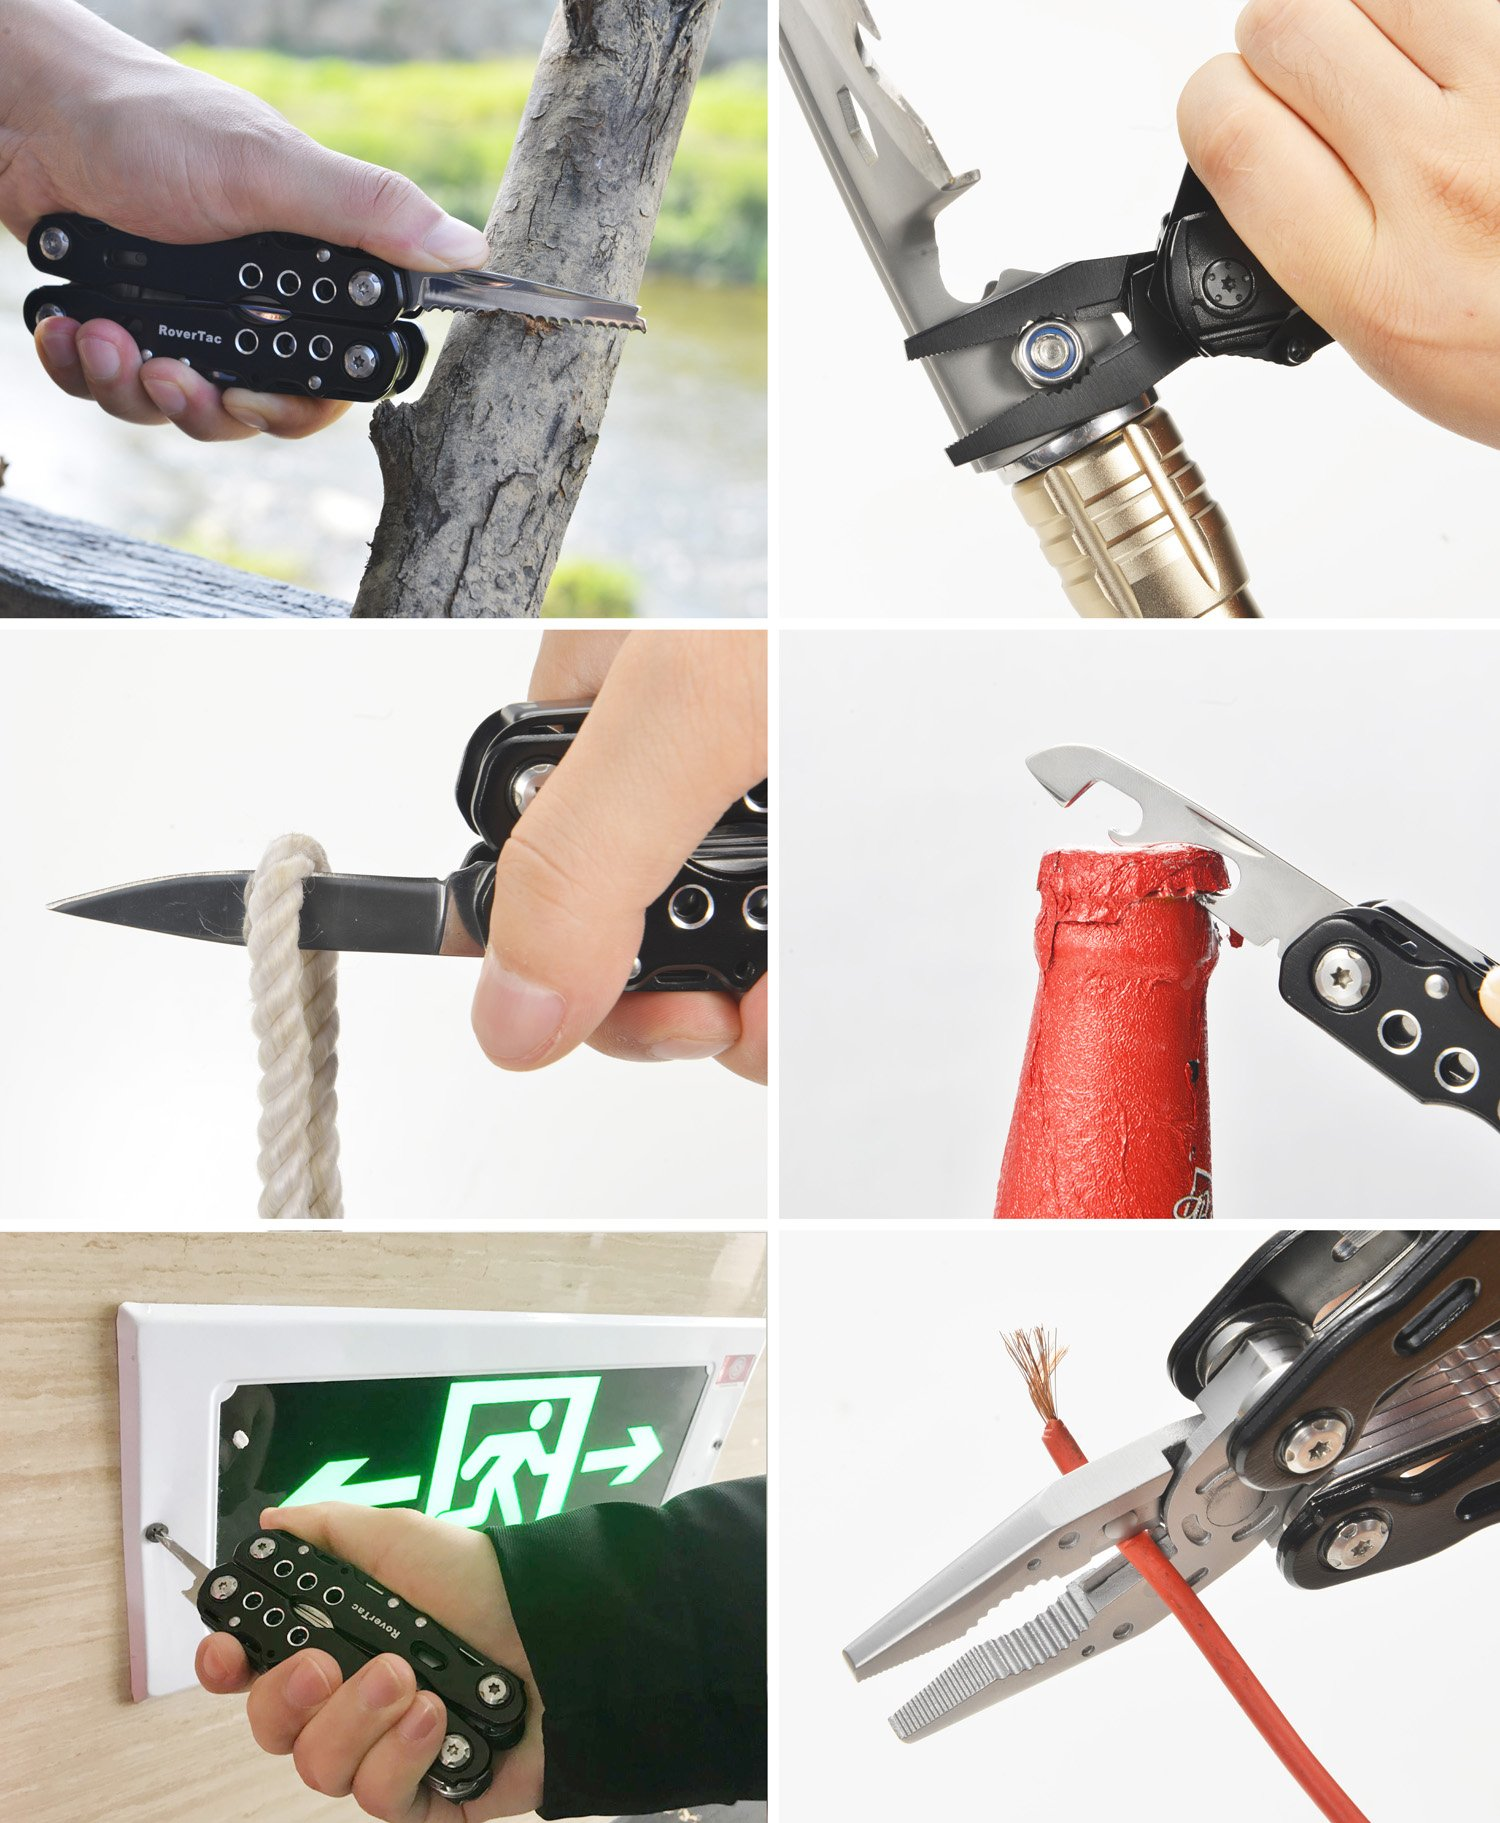 12 in 1 Multi tool Pliers RoverTac Pocket Knife with Durable Nylon Sheath, Multitool with Pliers, Bottle Opener, Screwdriver, Saw-Perfect for Outdoor, Survival, Camping, Fishing, Hiking (black) by RoverTac (Image #8)